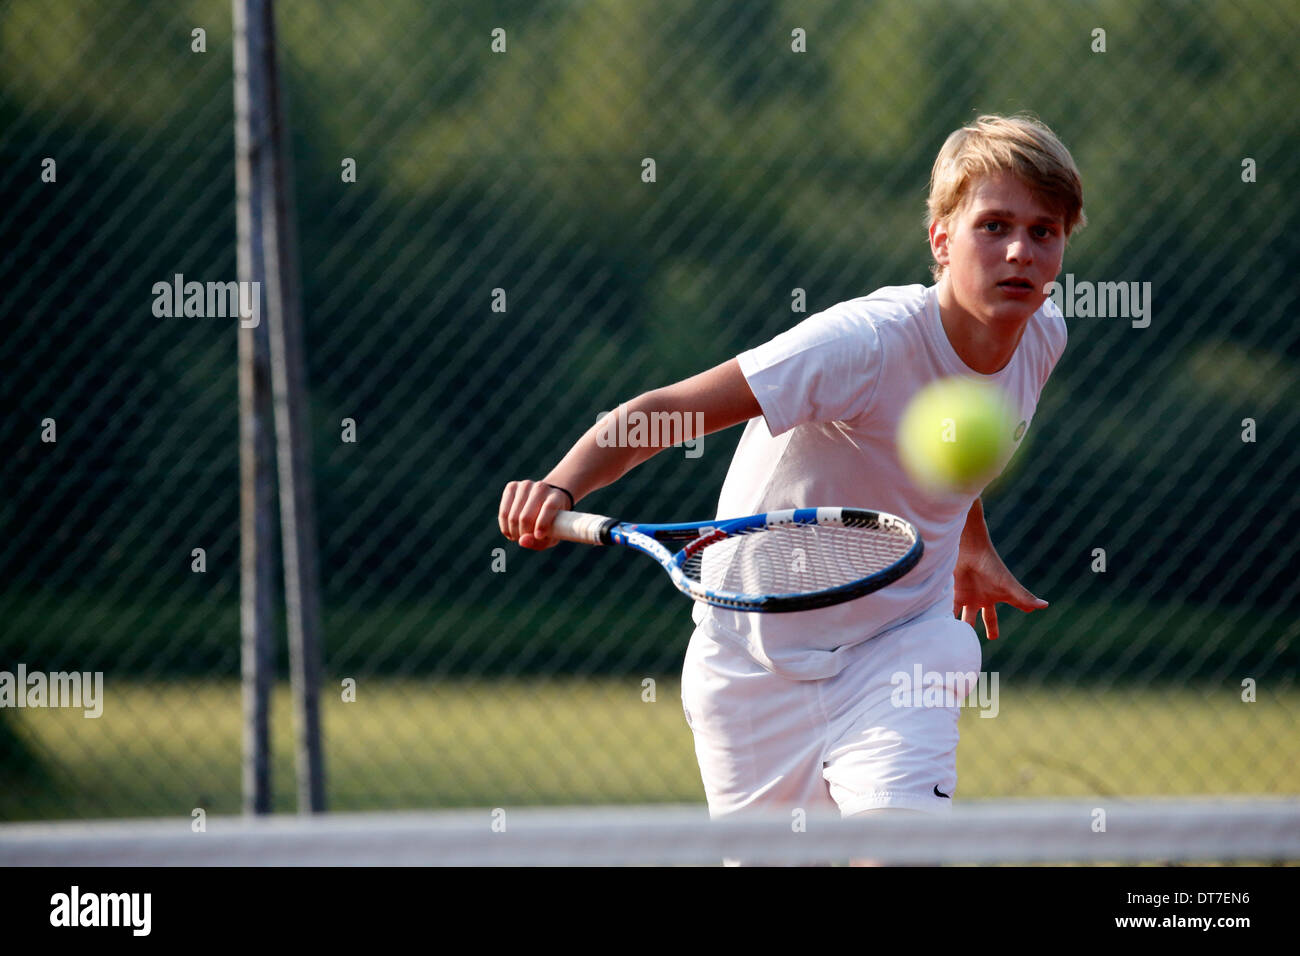 Joueuse de tennis. Photo Stock